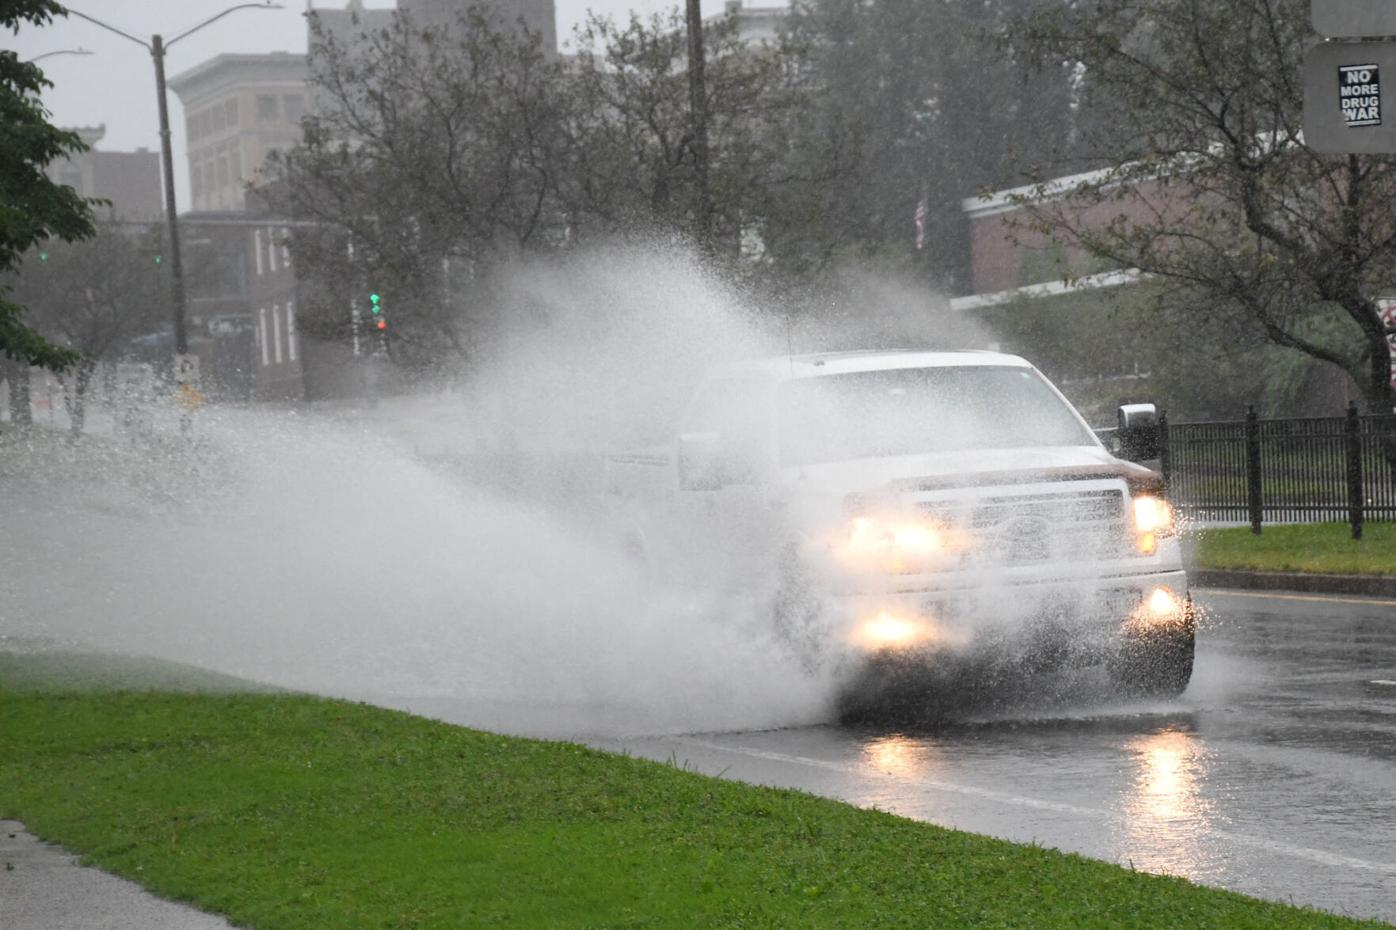 An SUV splashes through a puddle